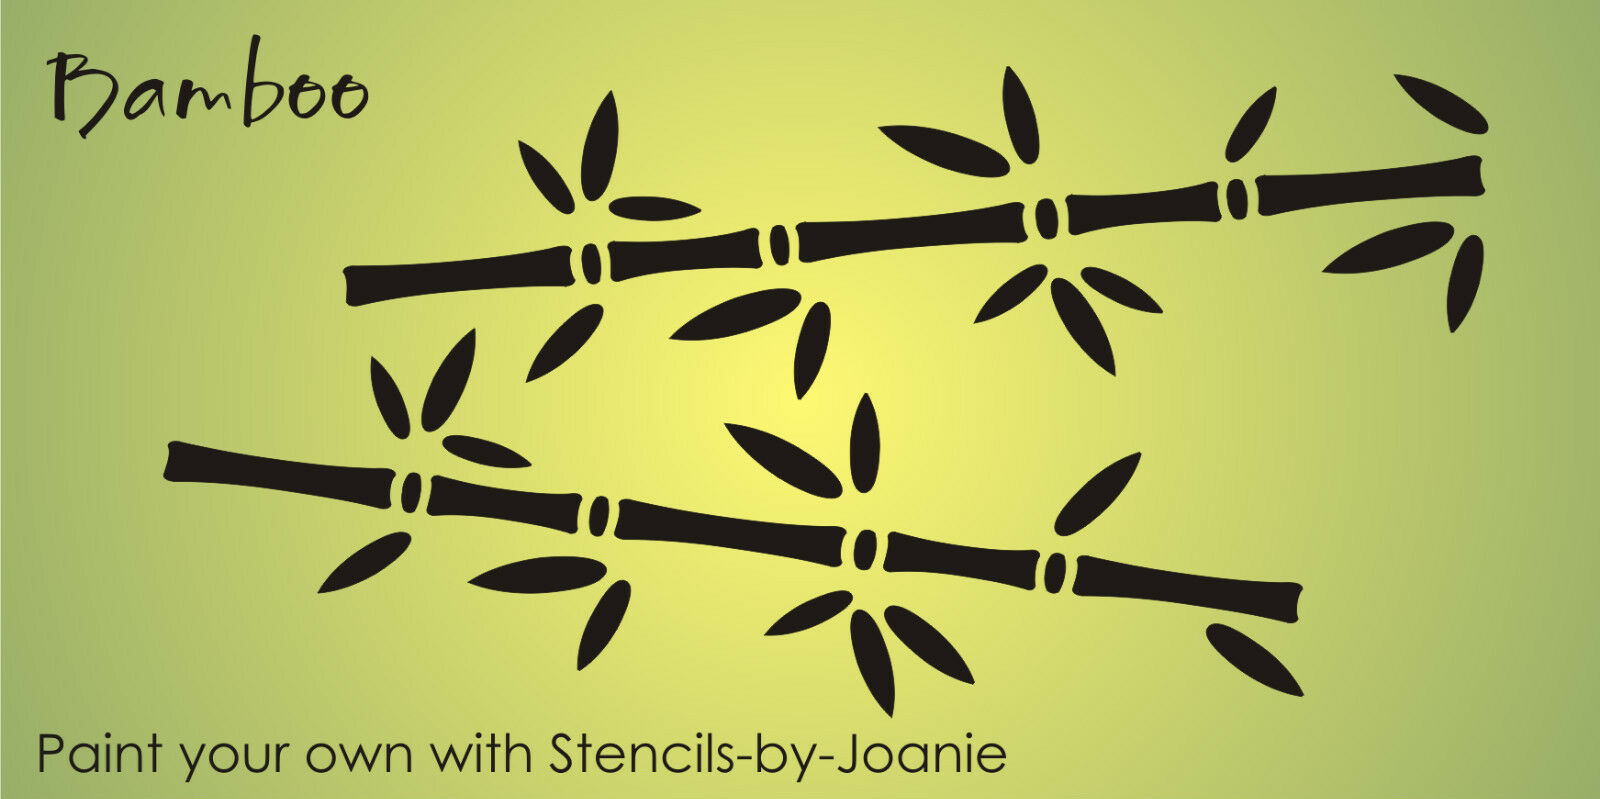 Lg bamboo stencil asian oriental plant tree design border wall art home signs picclick - Oriental stencils for walls ...